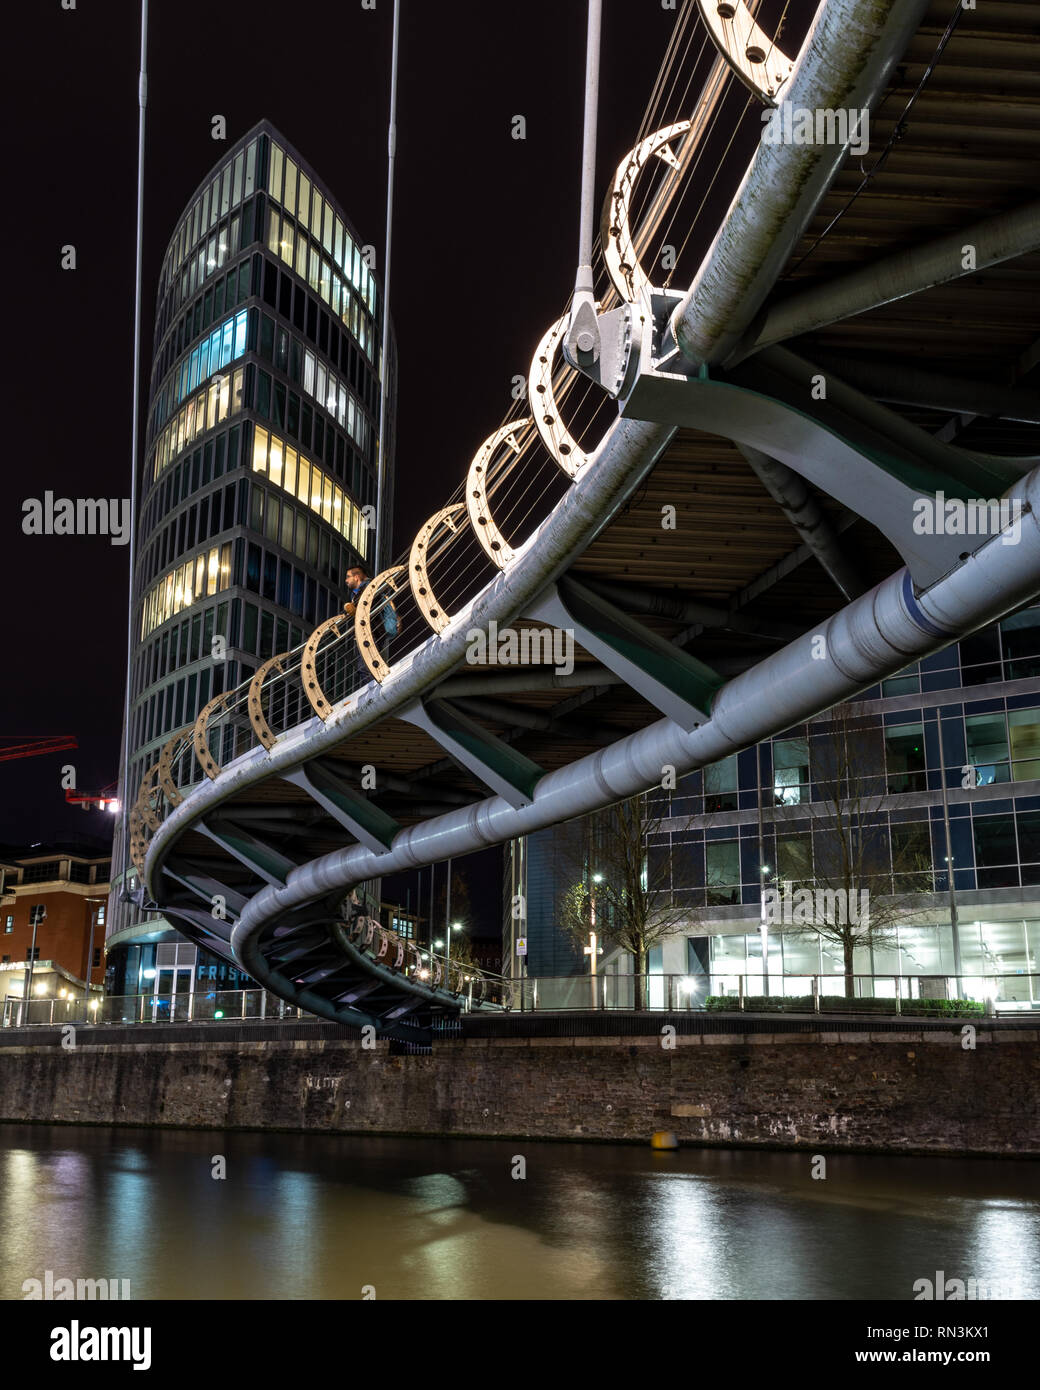 Bristol, England, UK - January 12, 2019: Modern office and apartment buildings are lit at night on Temple Quay, beside Valentine's Bridge on Bristol's - Stock Image